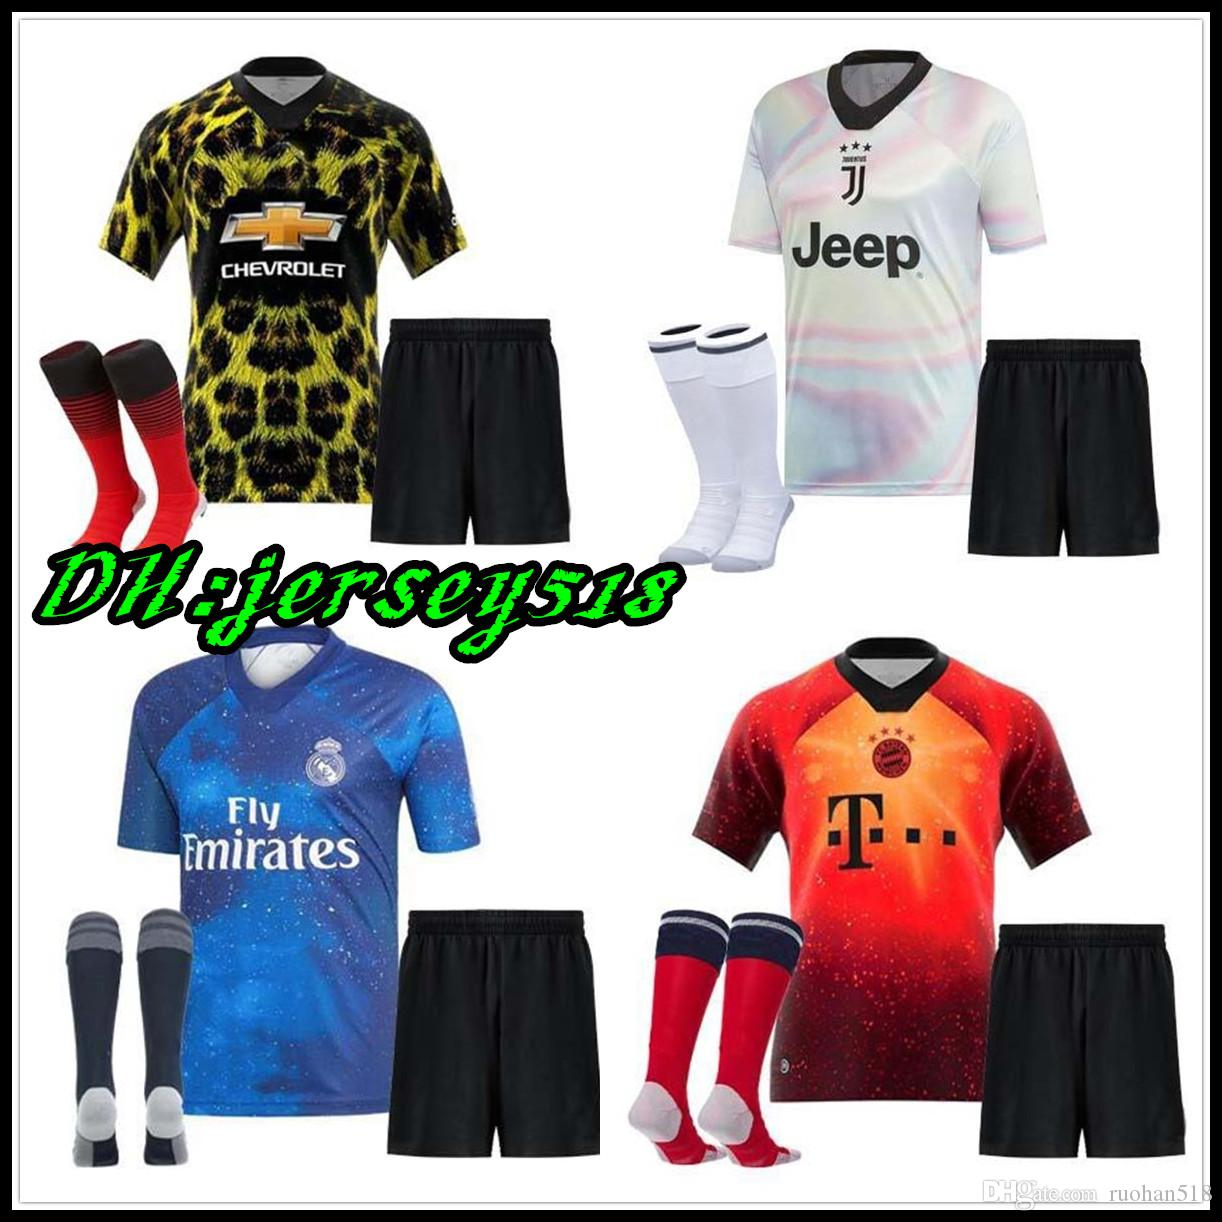 74bdf5ad6b5 2019 2018 EA Sports Kids Kit INSANE Bayern Munich Man United JUVENTUS REAL  MADRID Child SOCCER JERSEYS SHIRT TRAINING RONALDO SPECIAL SHIRTS From  Ruohan518